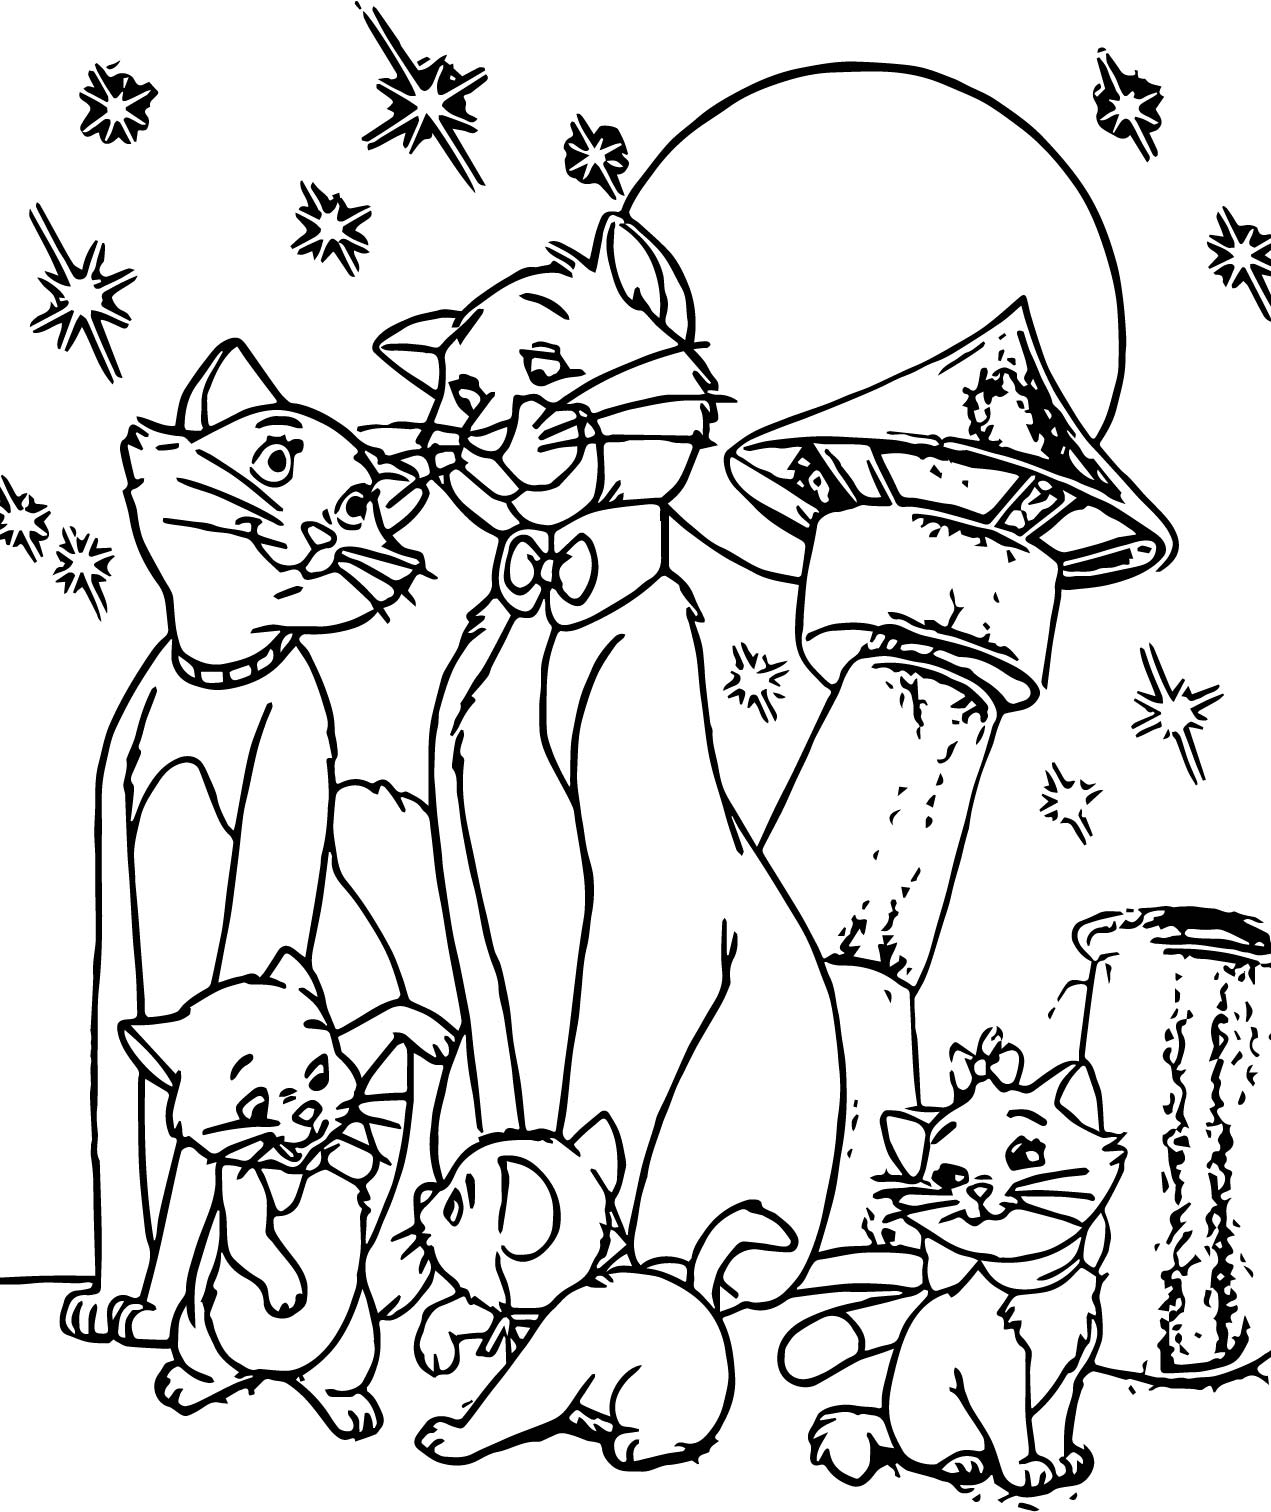 Family Disney The Aristocats Coloring Page ...